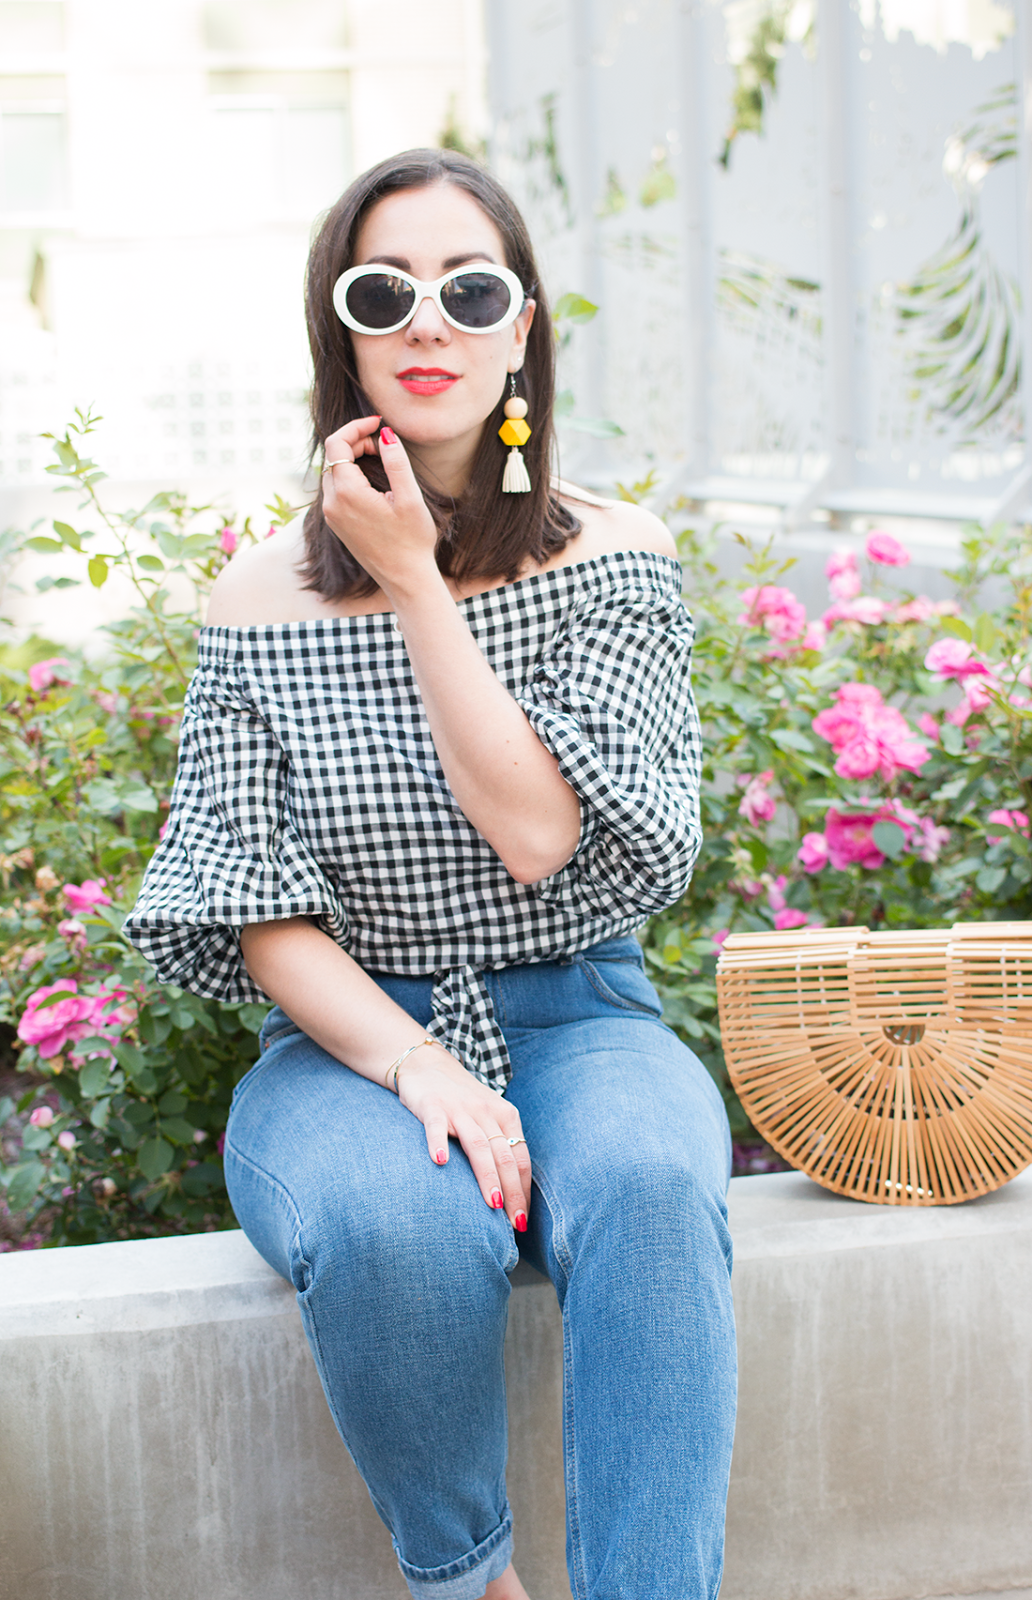 A Brief History Lesson on Gingham